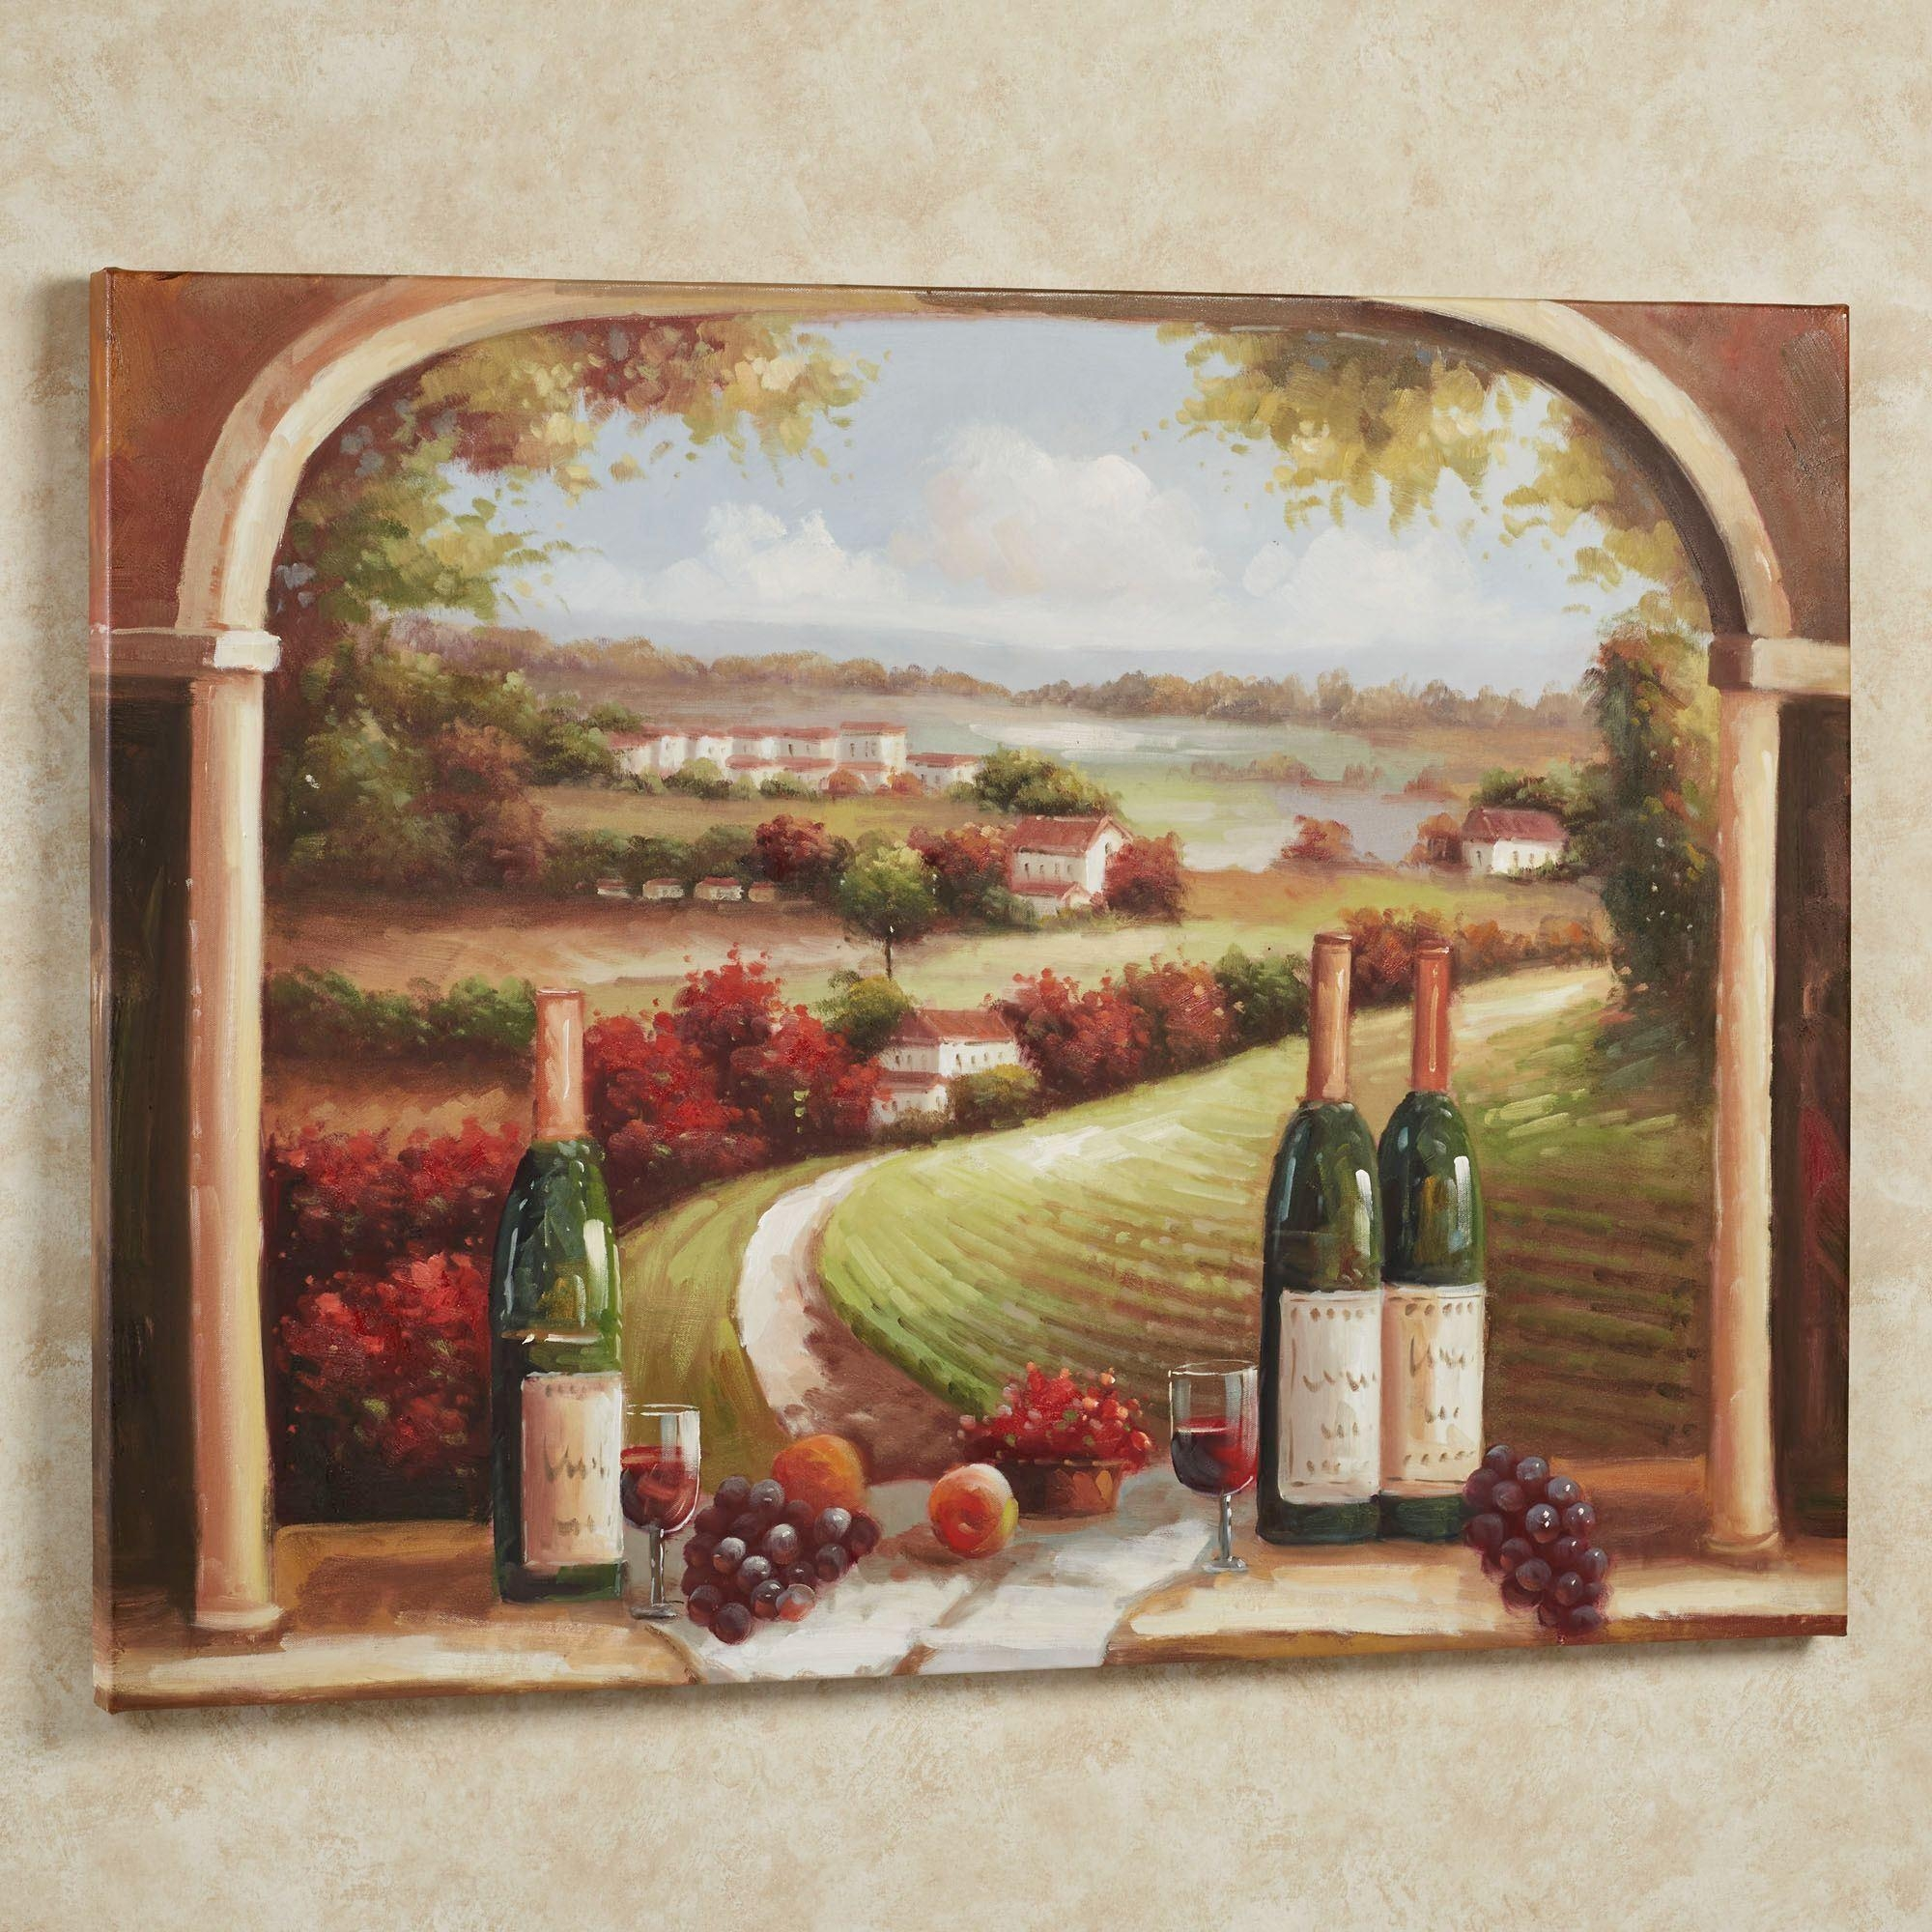 Kitchen And Dining Room Wall Decor | Touch Of Class For Vineyard Wall Art (View 7 of 20)